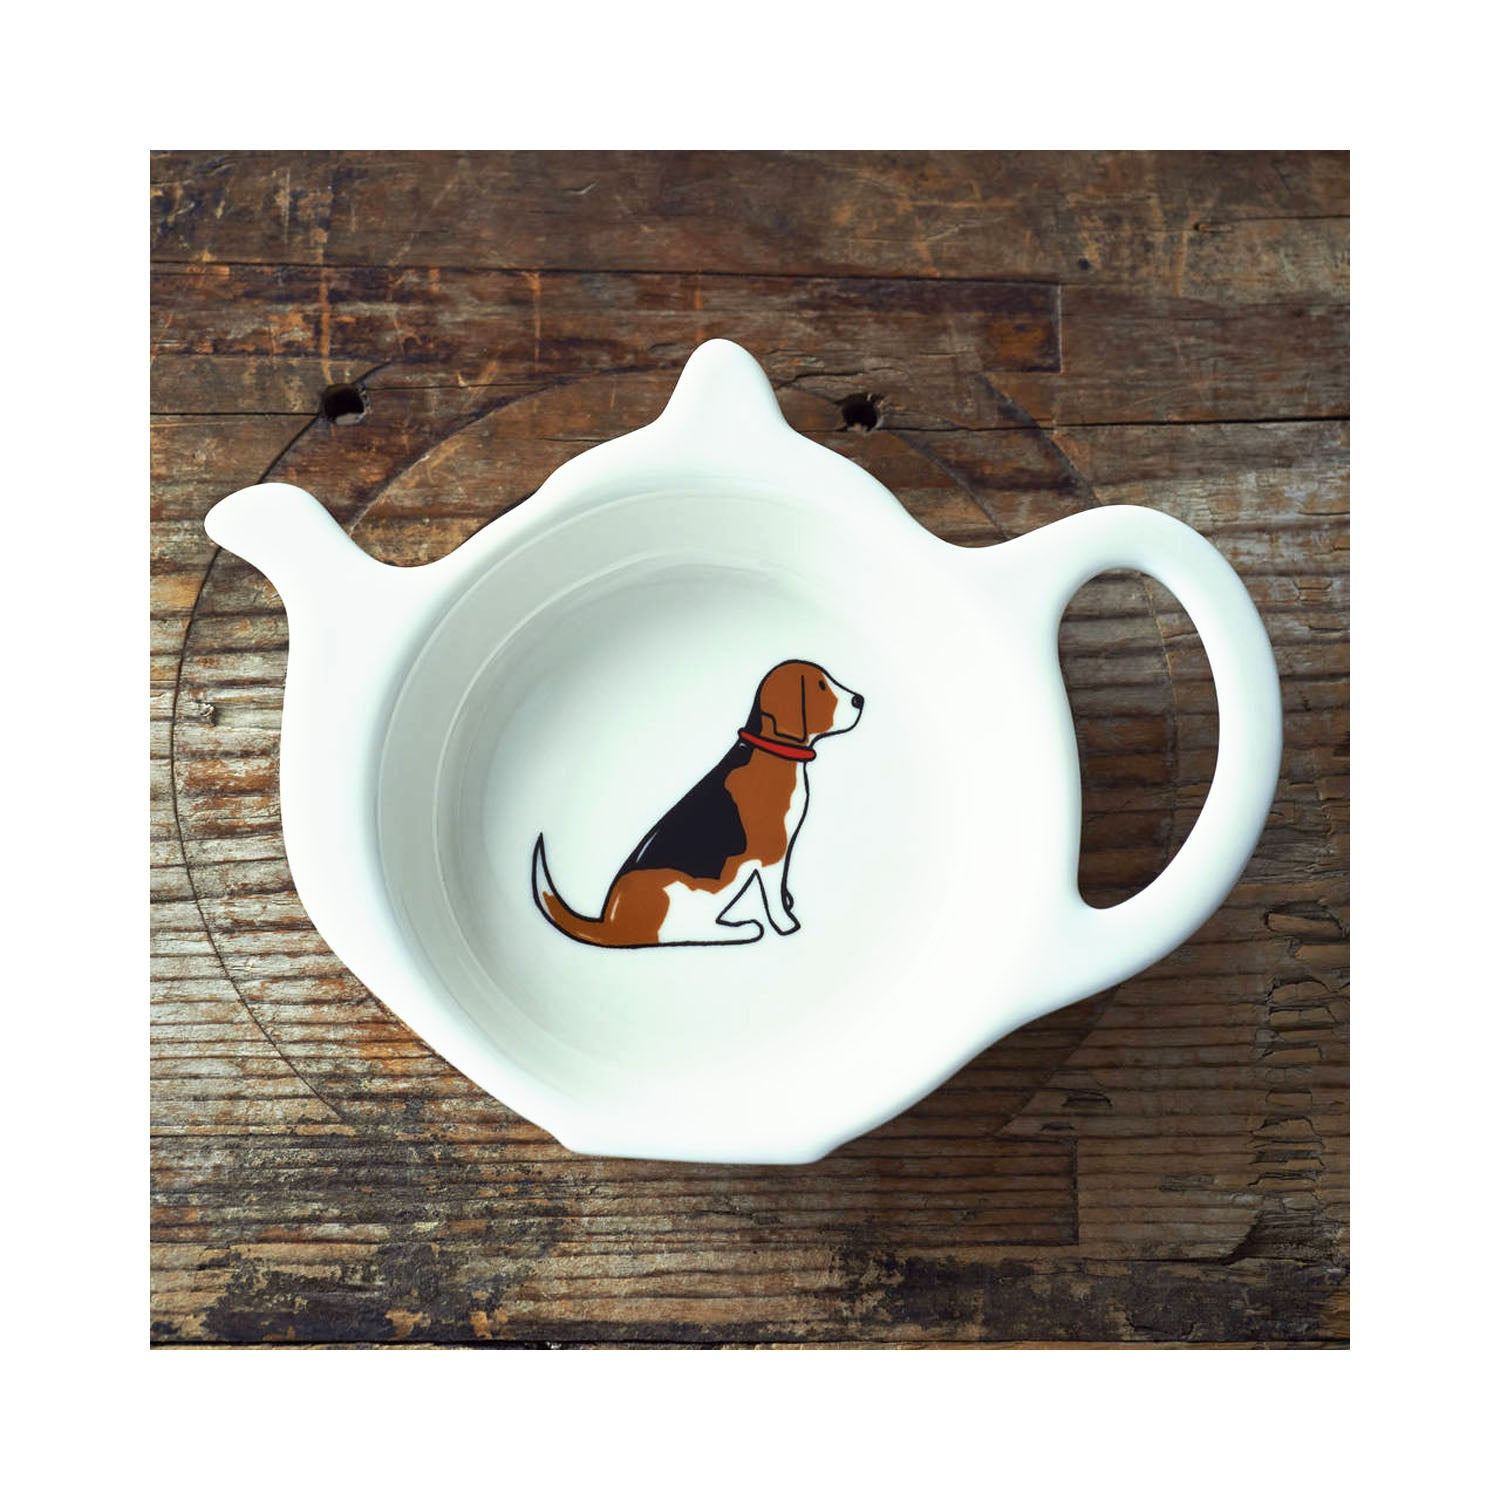 Dog Lover Gifts available at Dog Krazy Gifts - Rupert The Beagle Teabag Dish - part of the Sweet William range available from www.DogKrazyGifts.co.uk